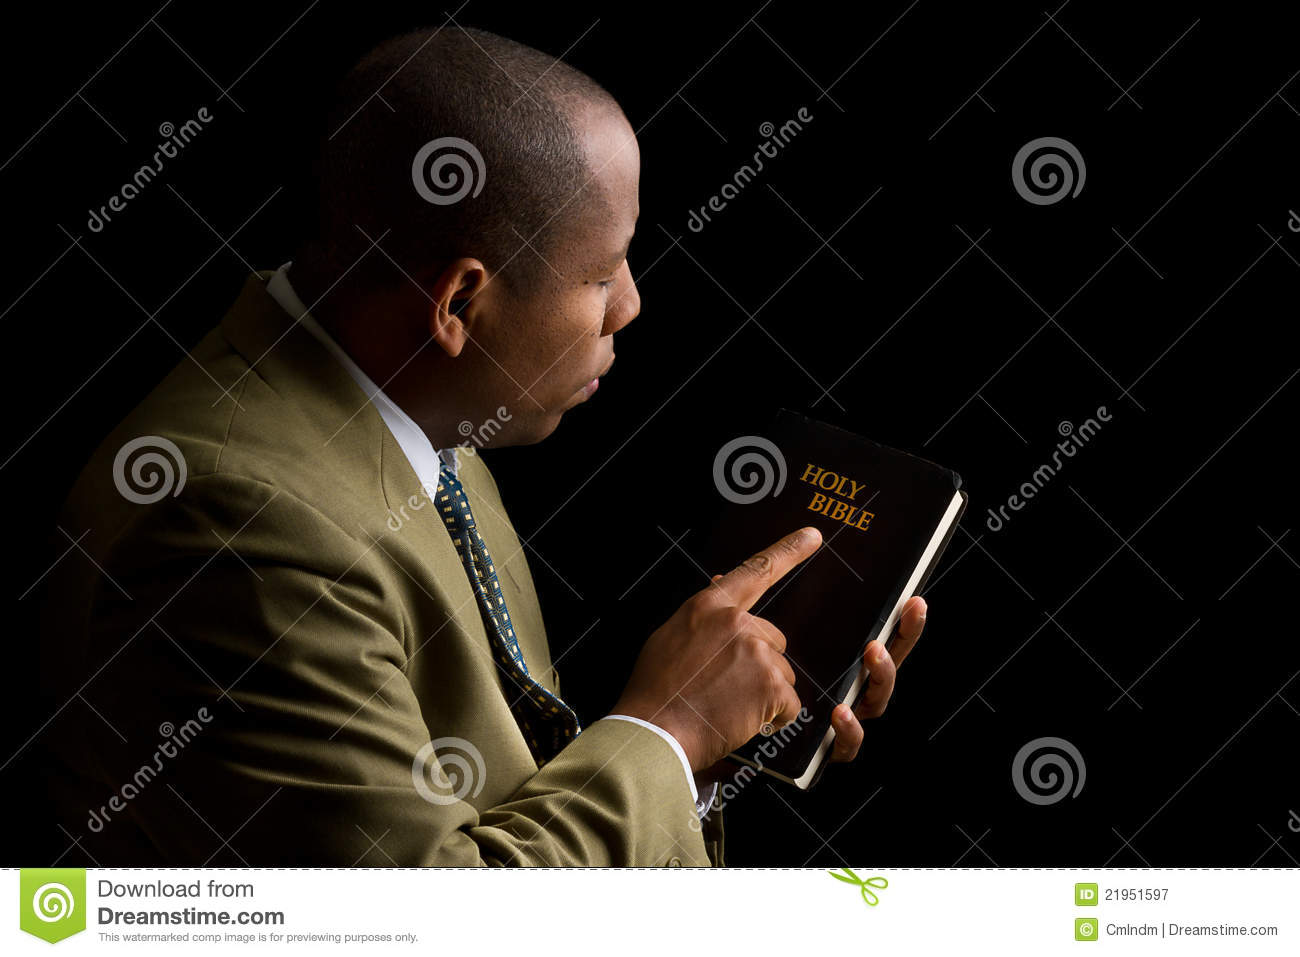 Pointing To The Holy Bible As The Answer Royalty Free Stock Photography Ima